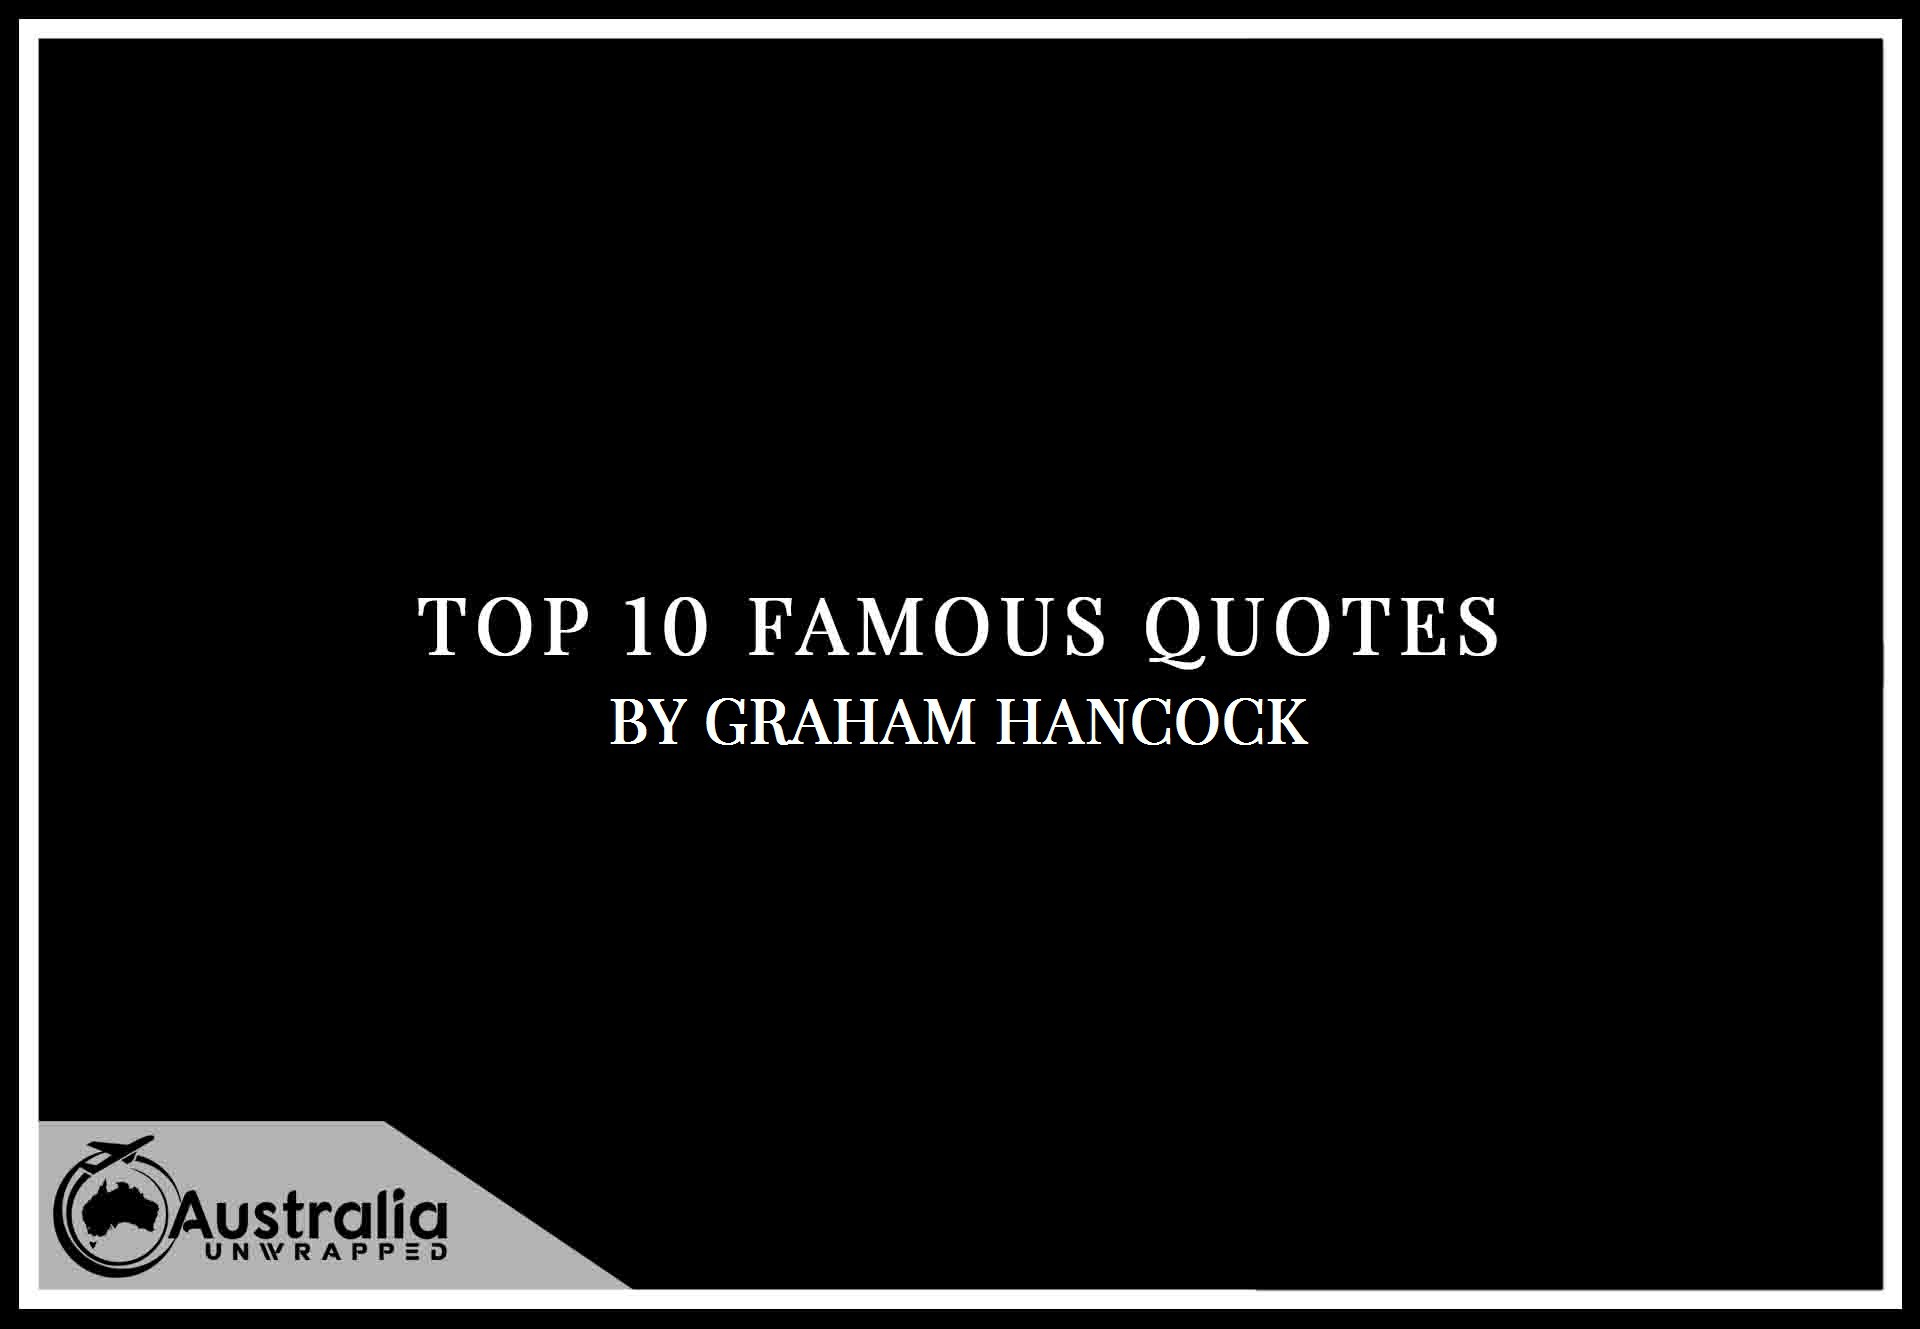 Graham Hancock's Top 10 Popular and Famous Quotes